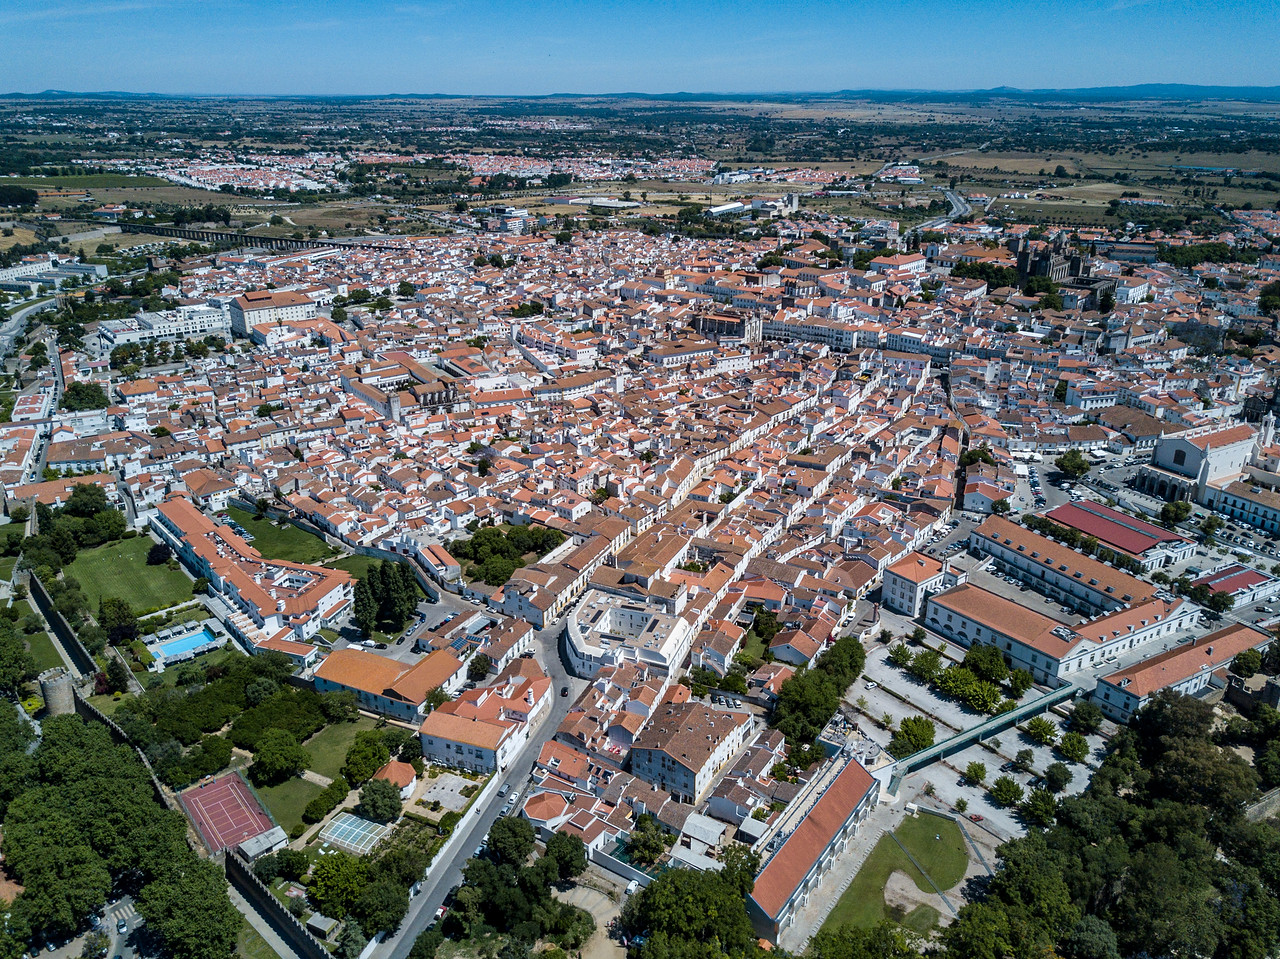 Drone Photo of the Red Tiles Roofs of Evora, Portugal évora